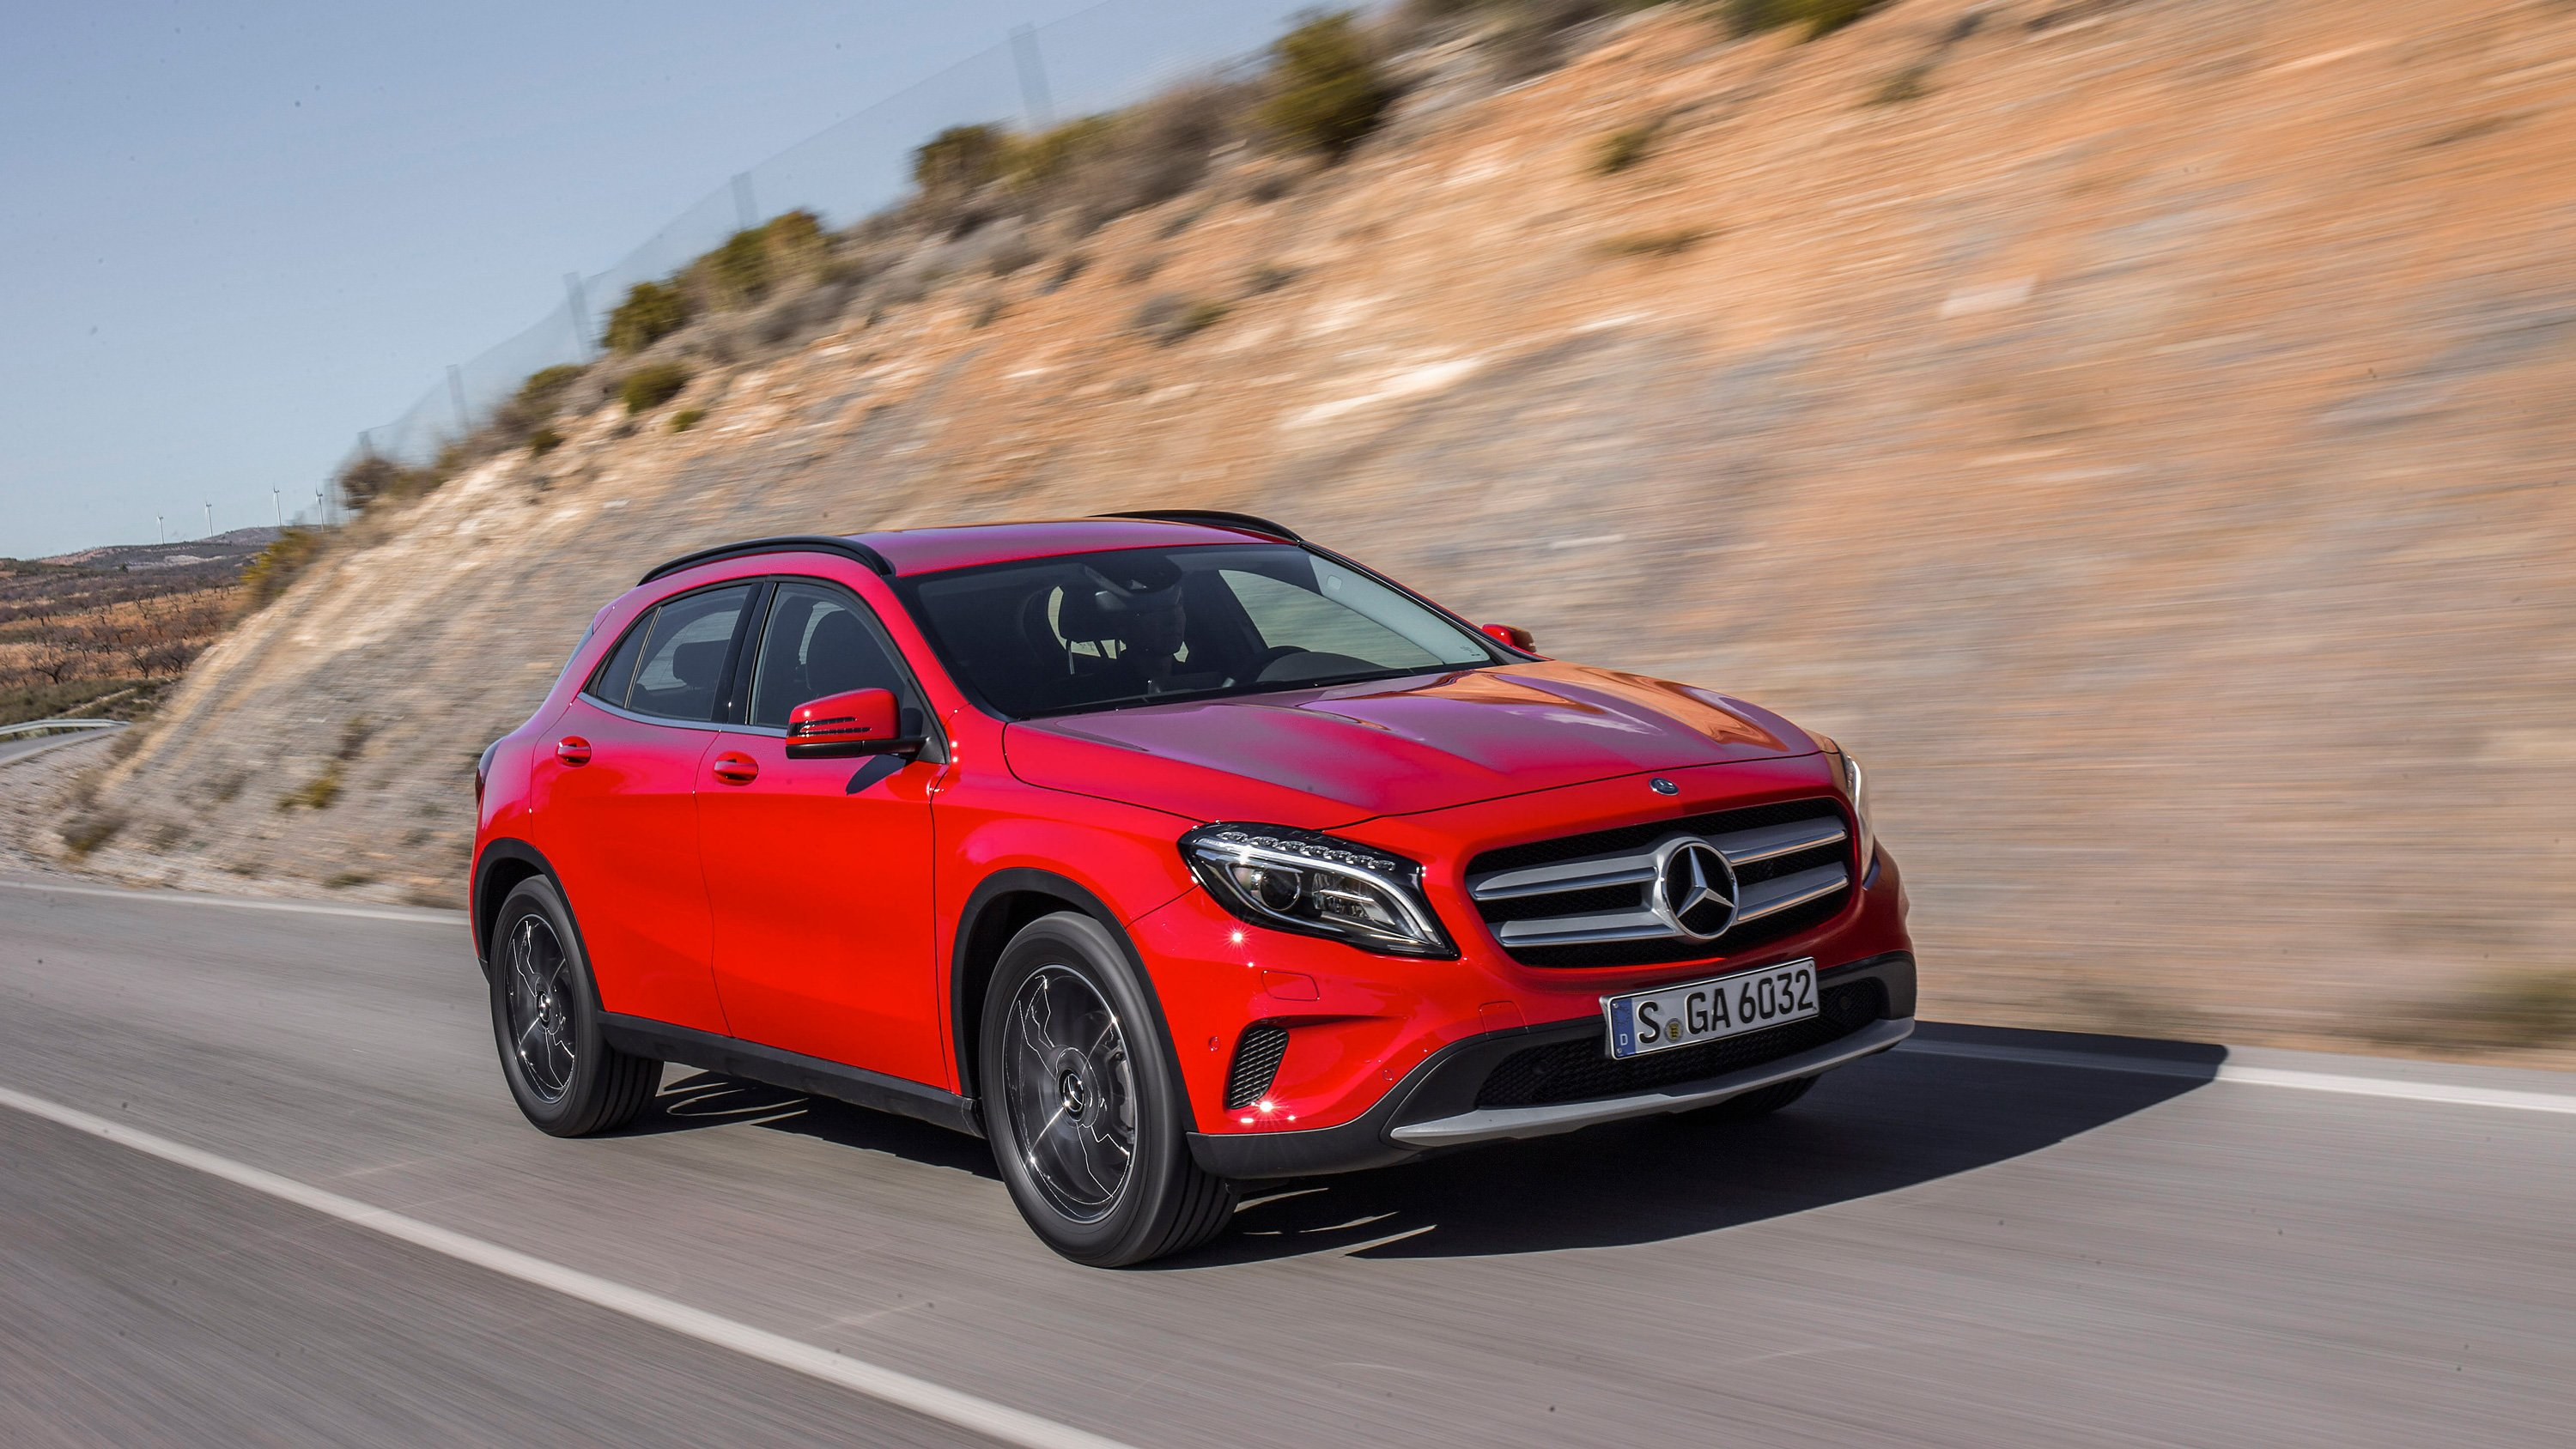 Mercedes benz gla180 marks new entry point to suv range for Mercedes benz gla 180